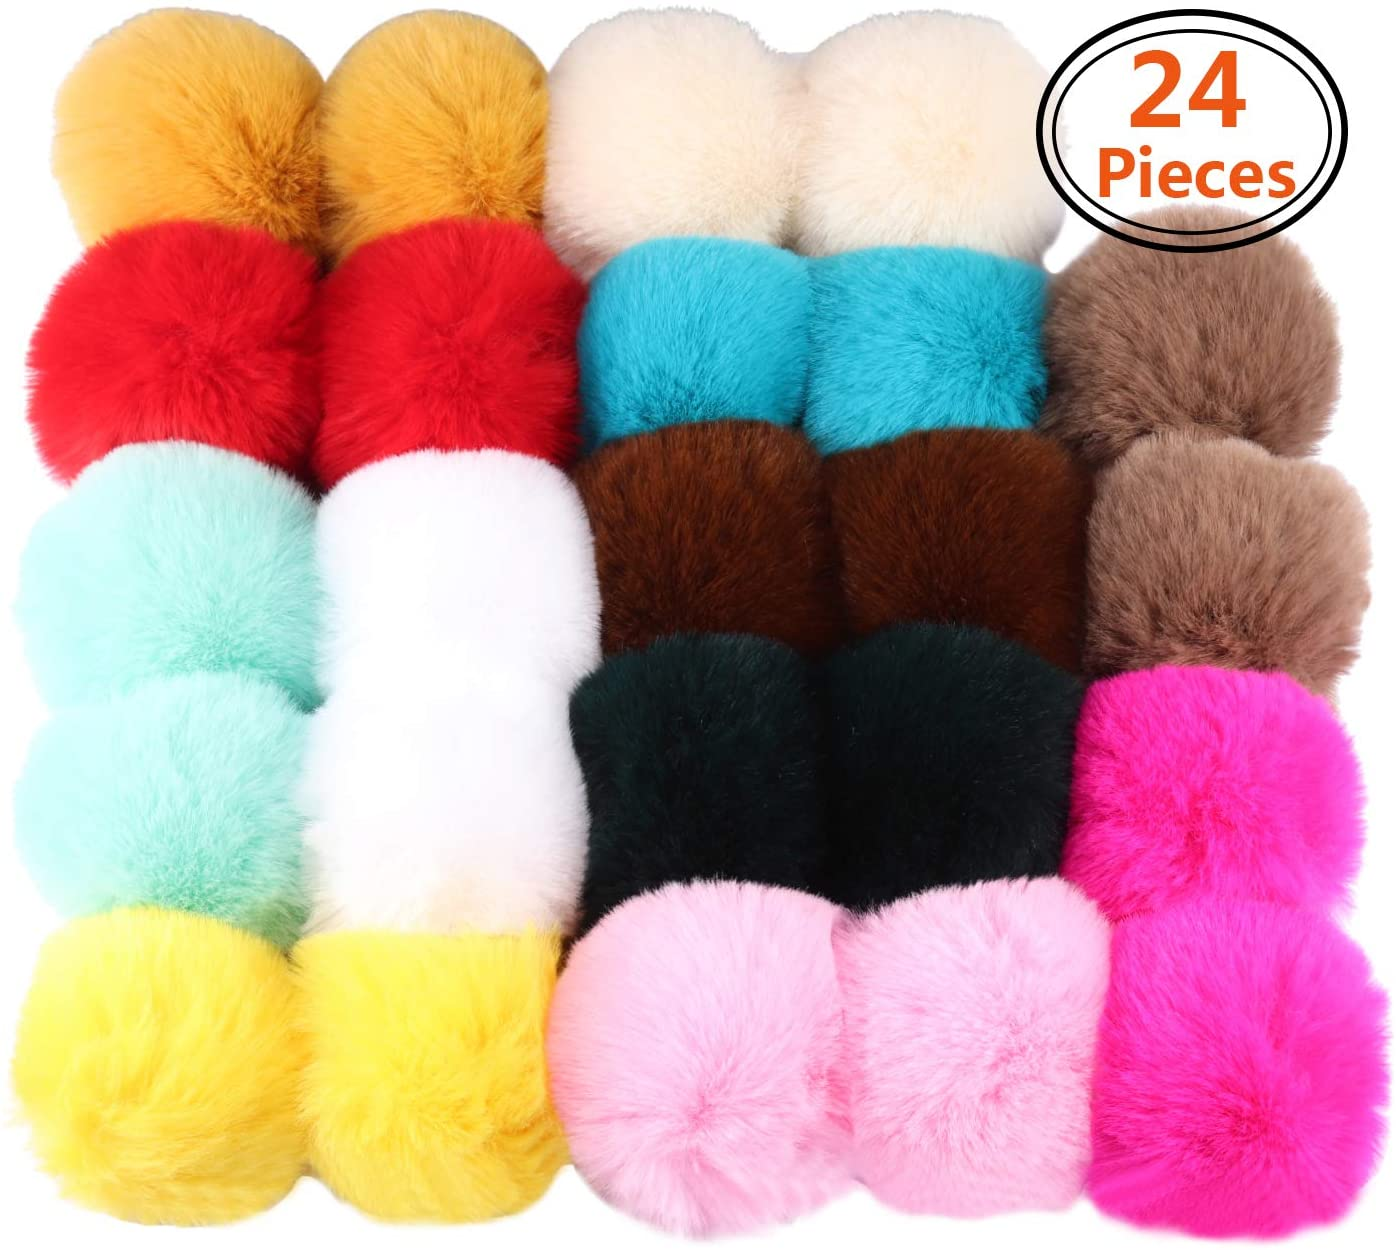 Forise 24 Pieces Colorful Faux Fur Pom Poms Ball DIY Fur Fluffy Ball with Elastic Loop for Knitting Hats Scarves Gloves Bag Charms